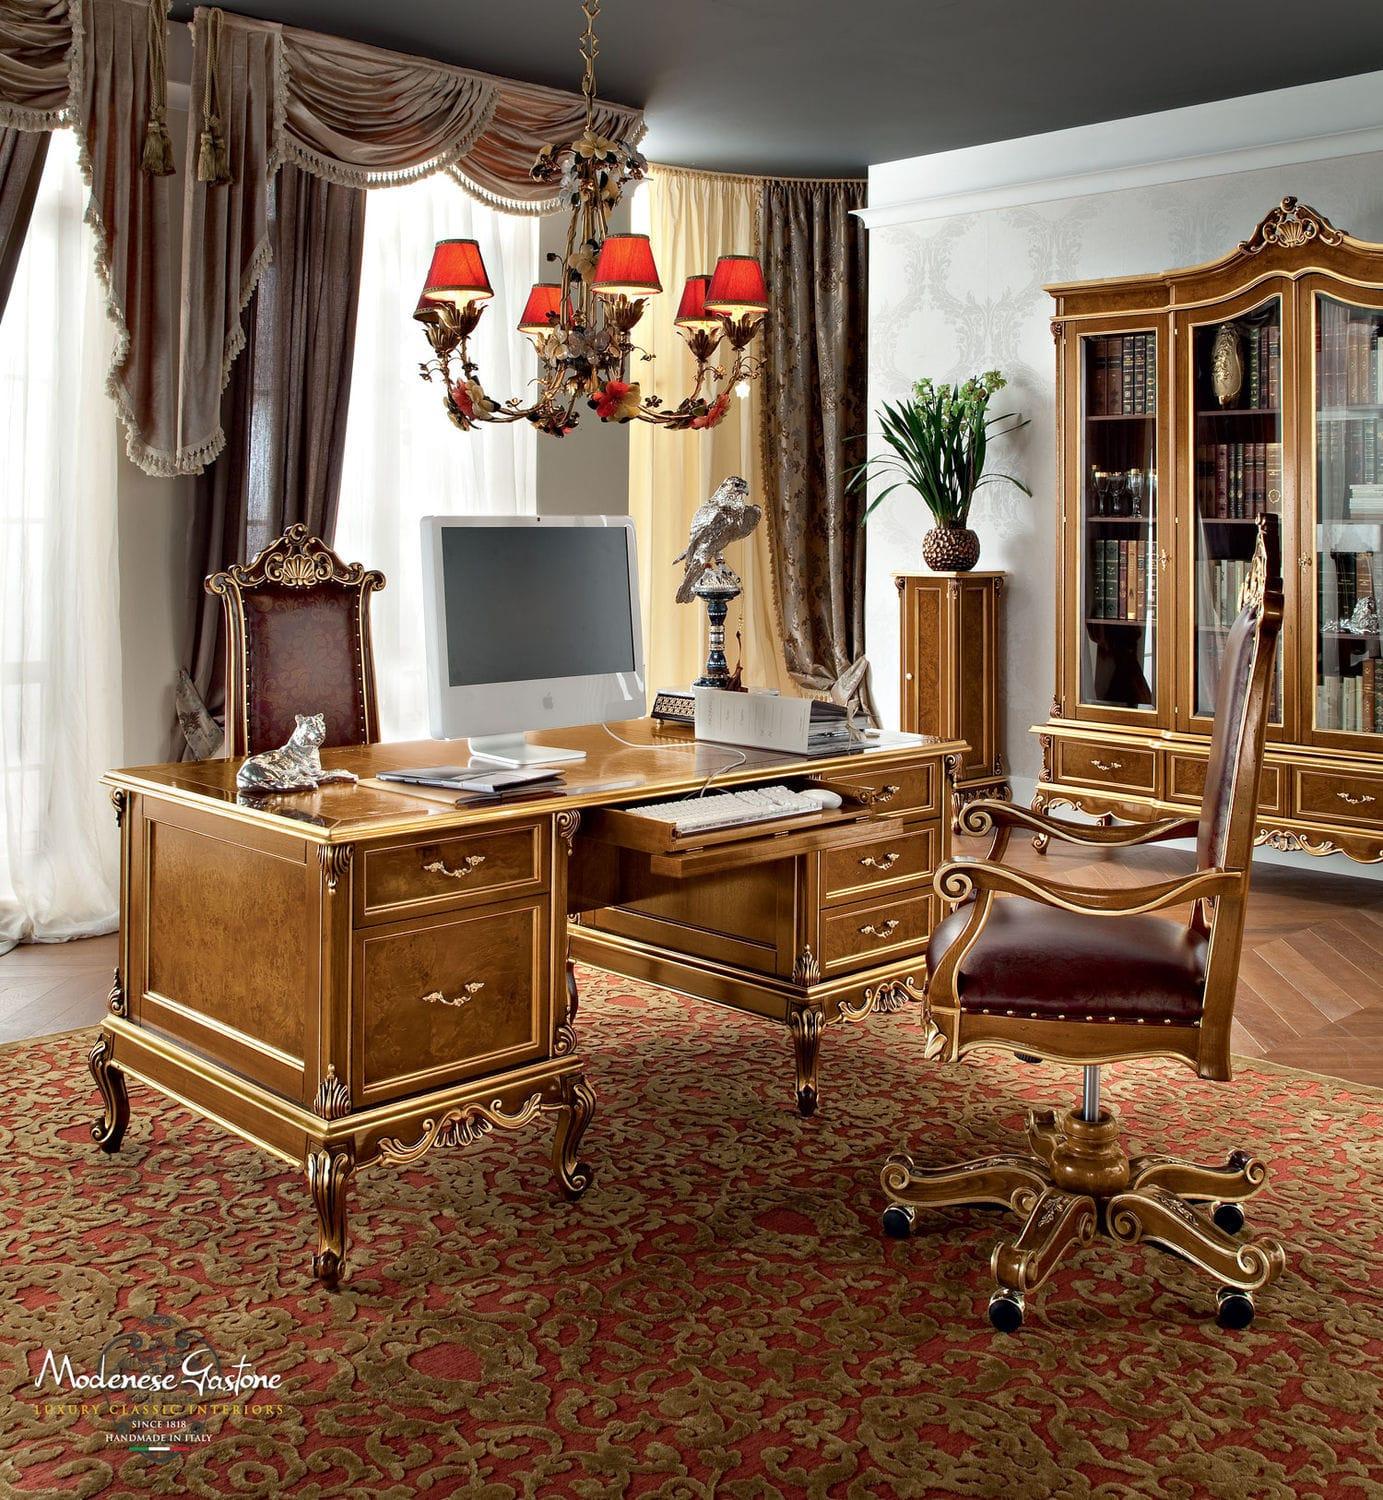 Classic Table Office Wooden Desk Classic Casanova Modenese Interiors Luxury Furniture